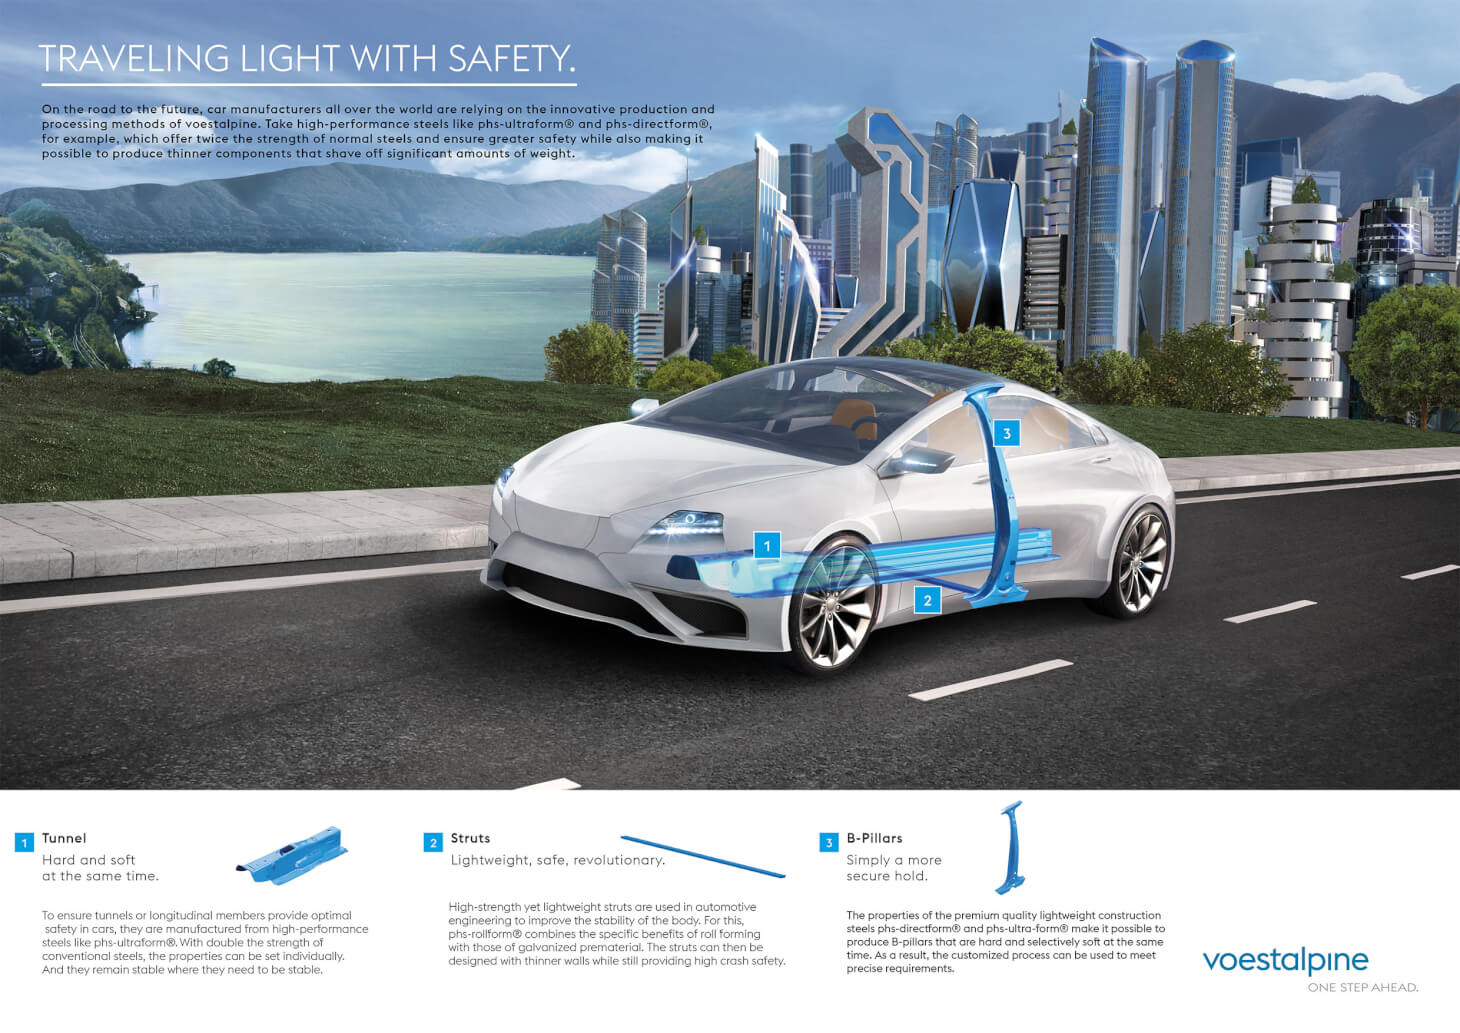 High-strength, lightweight solutions for passenger vehicles